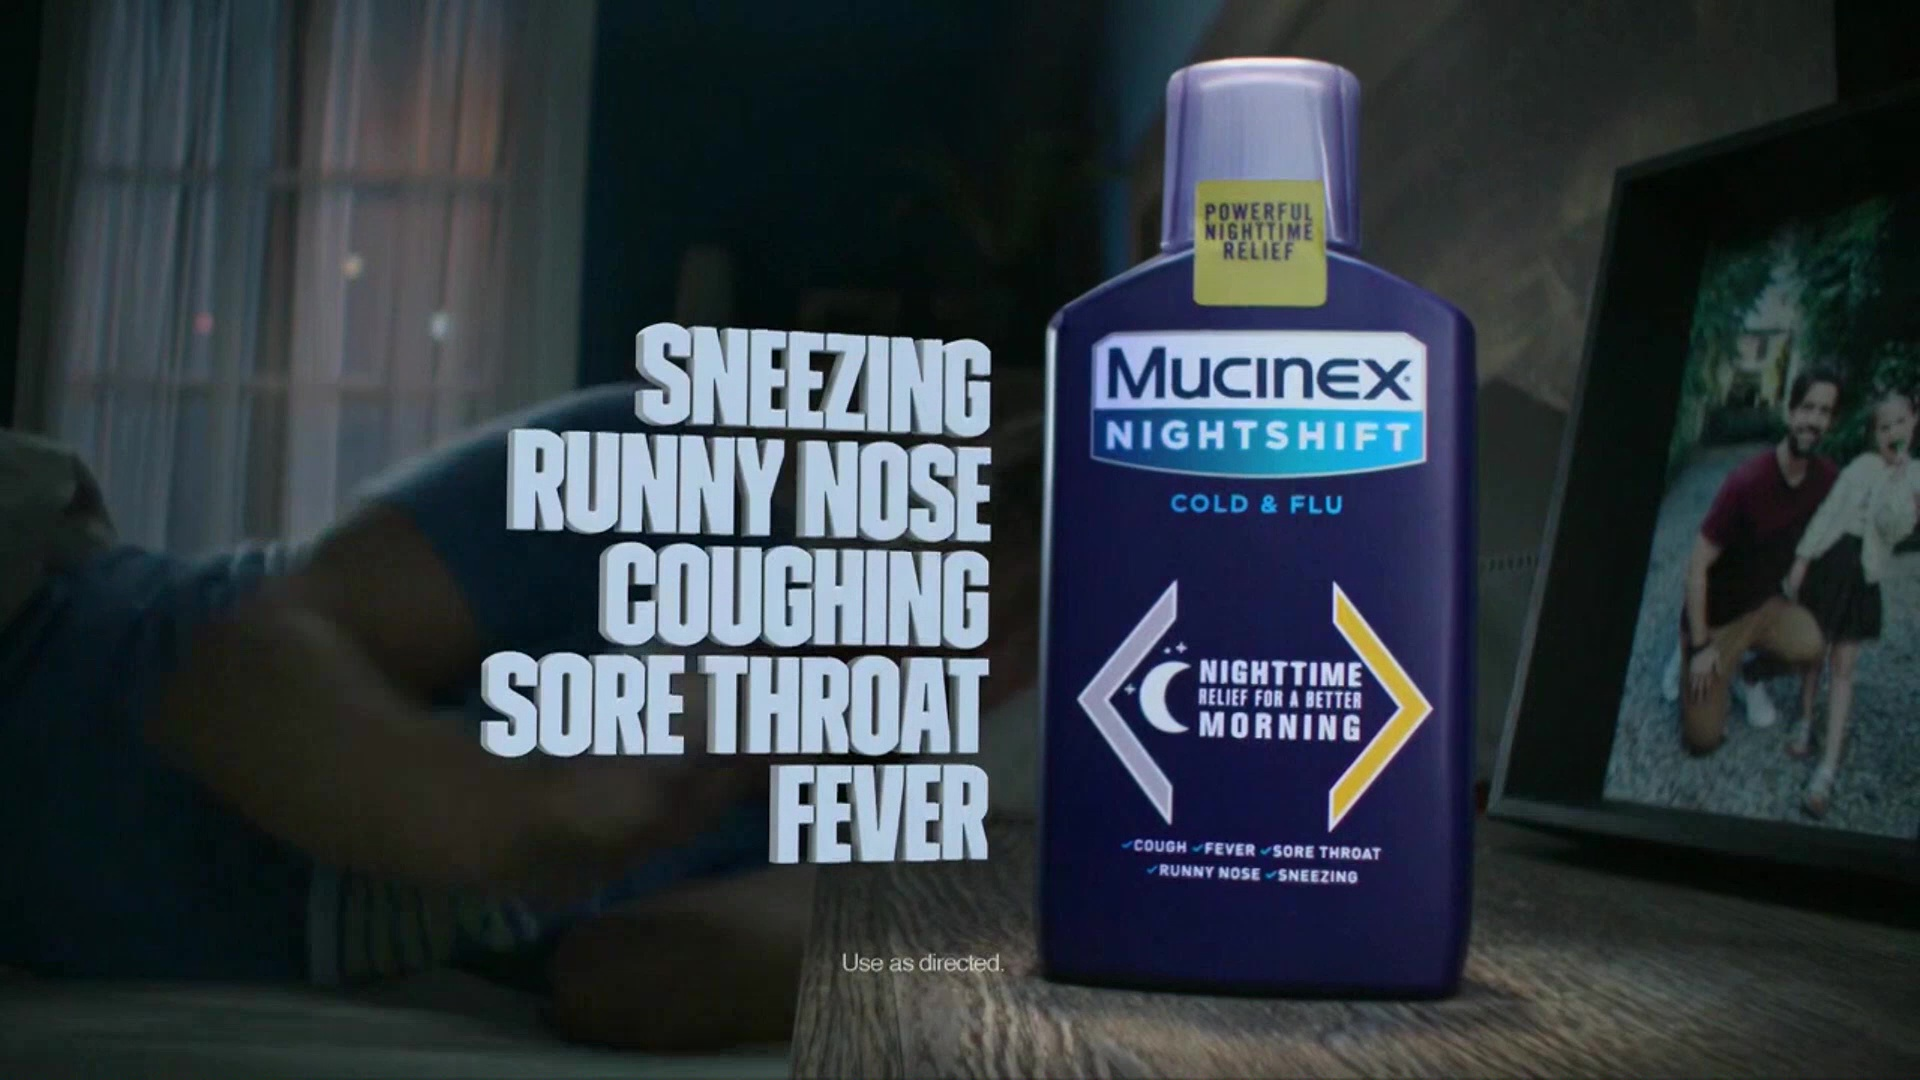 Mucinex---kw---Healthcare_category---CTV_-_November_6--2020---dtc---Canada---English---TV_commercial---15_seconds.mp4